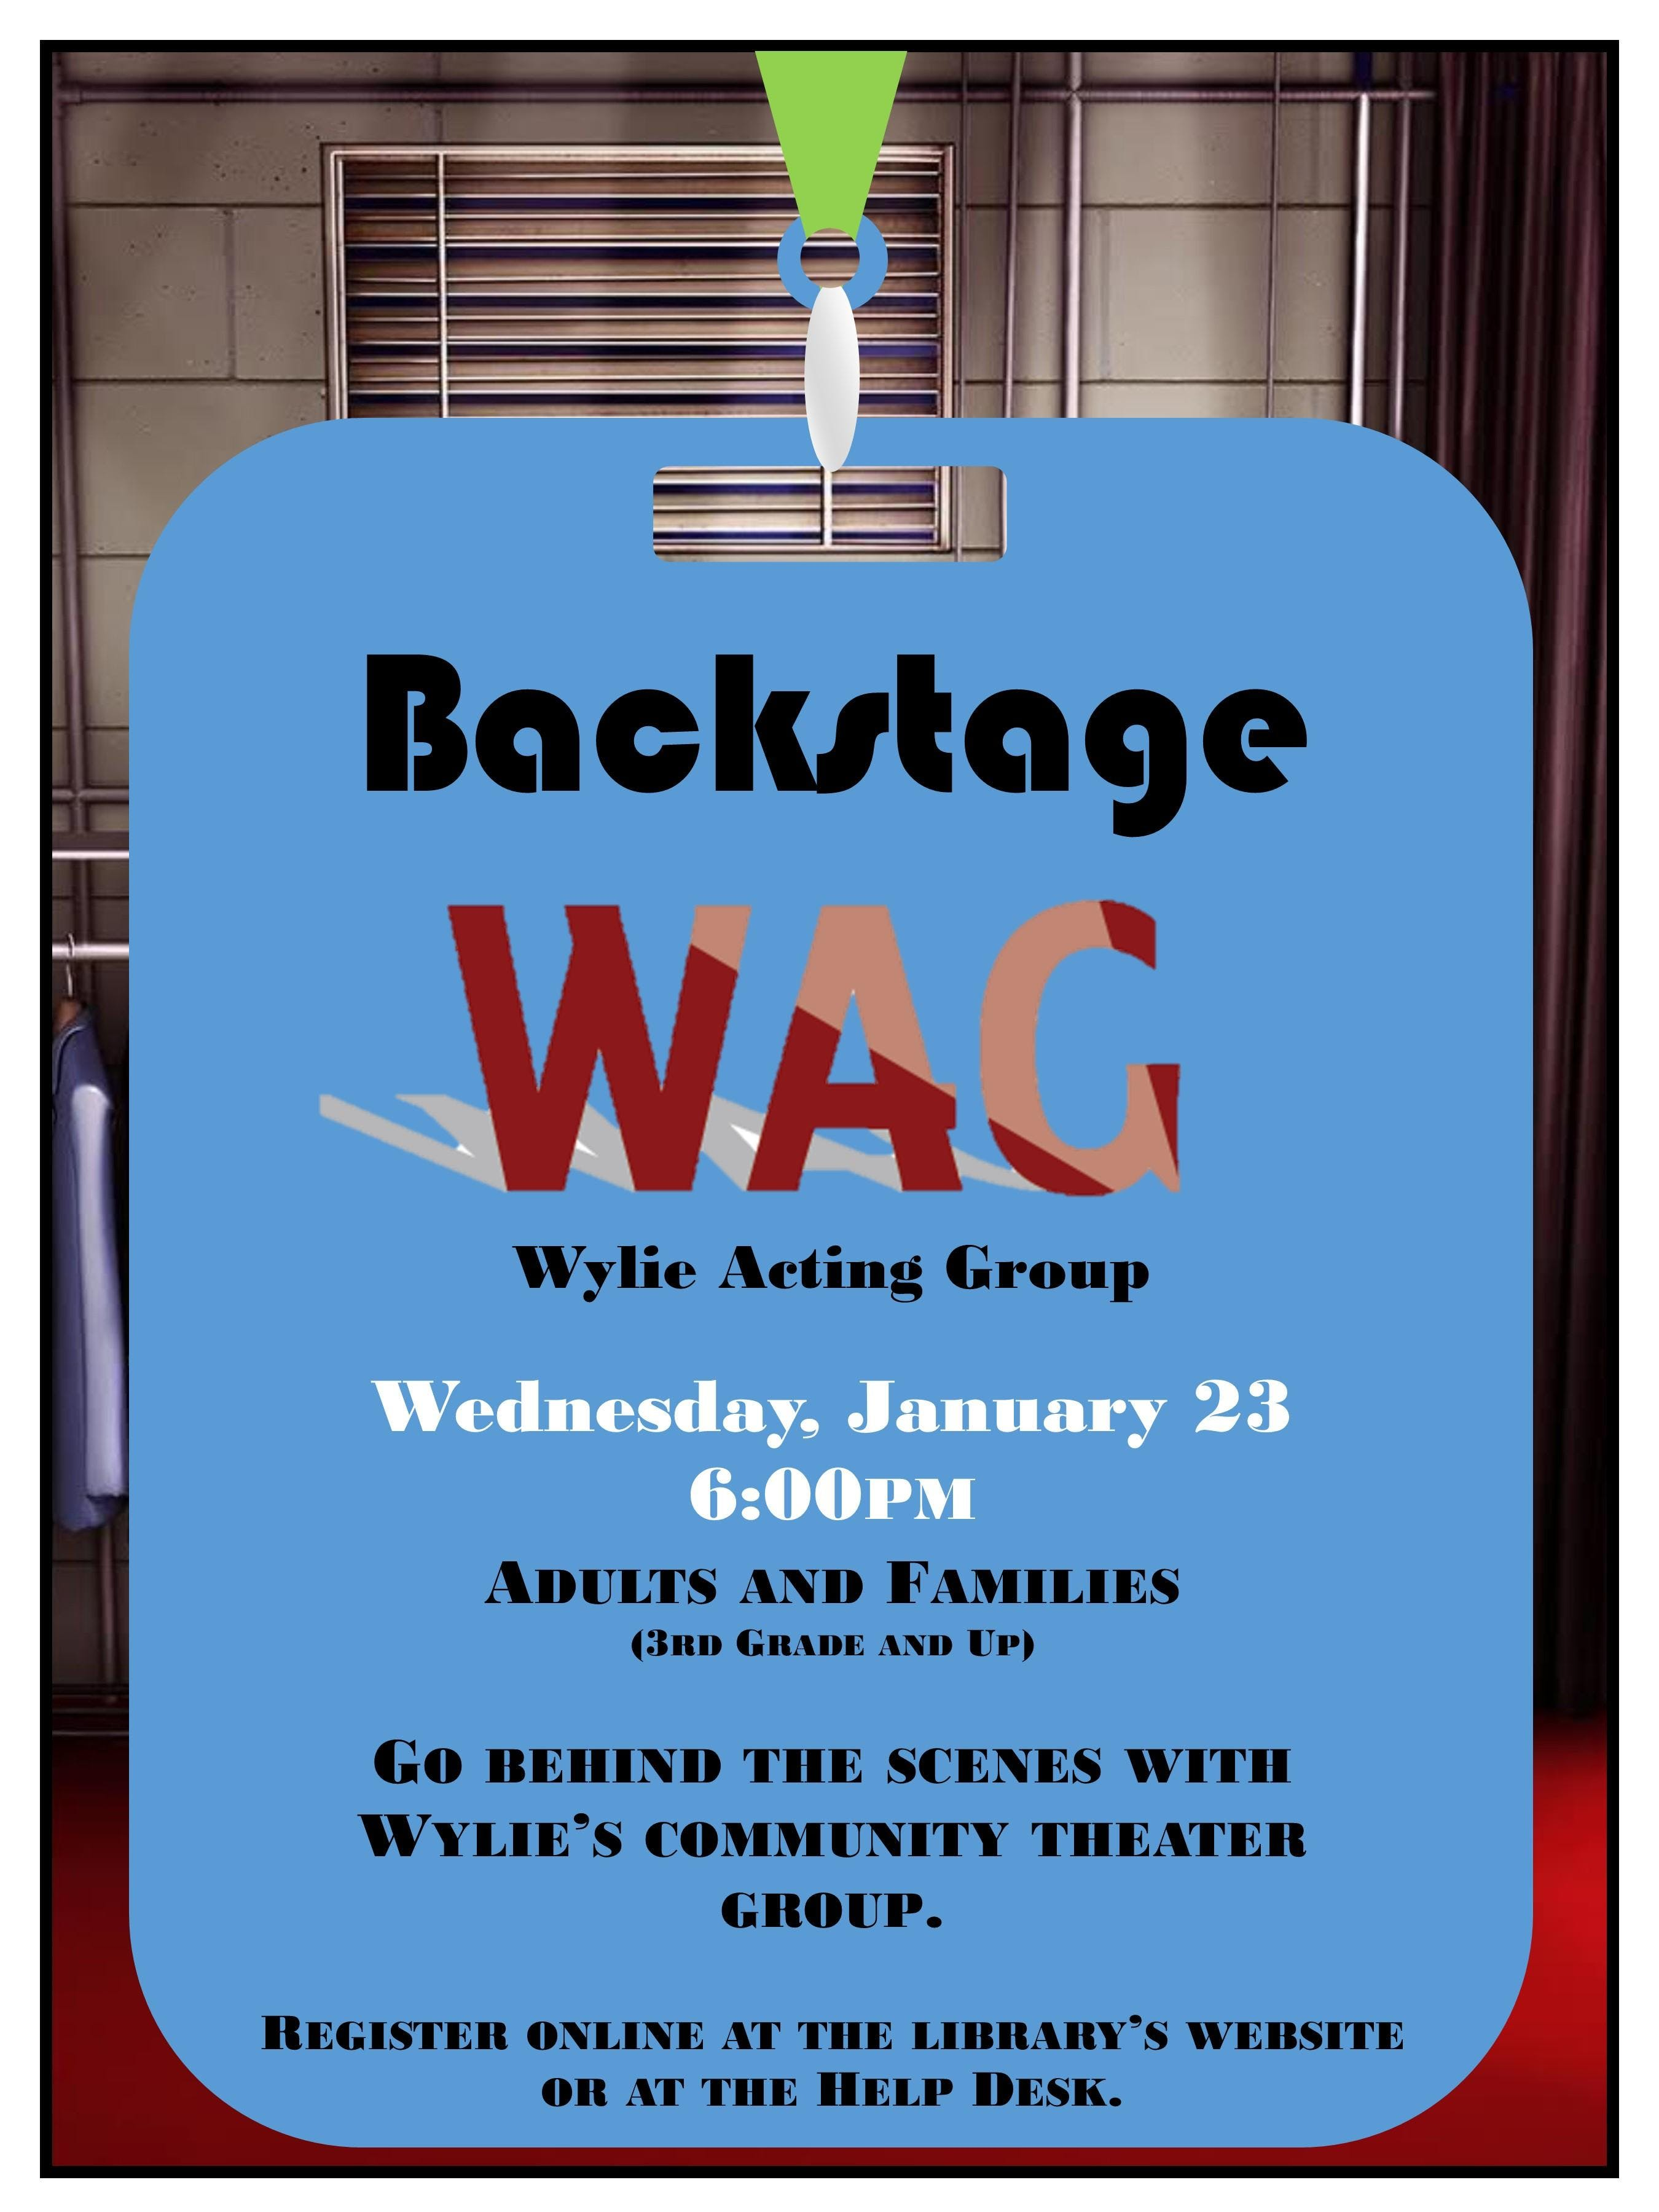 Backstage: Wylie Acting Group